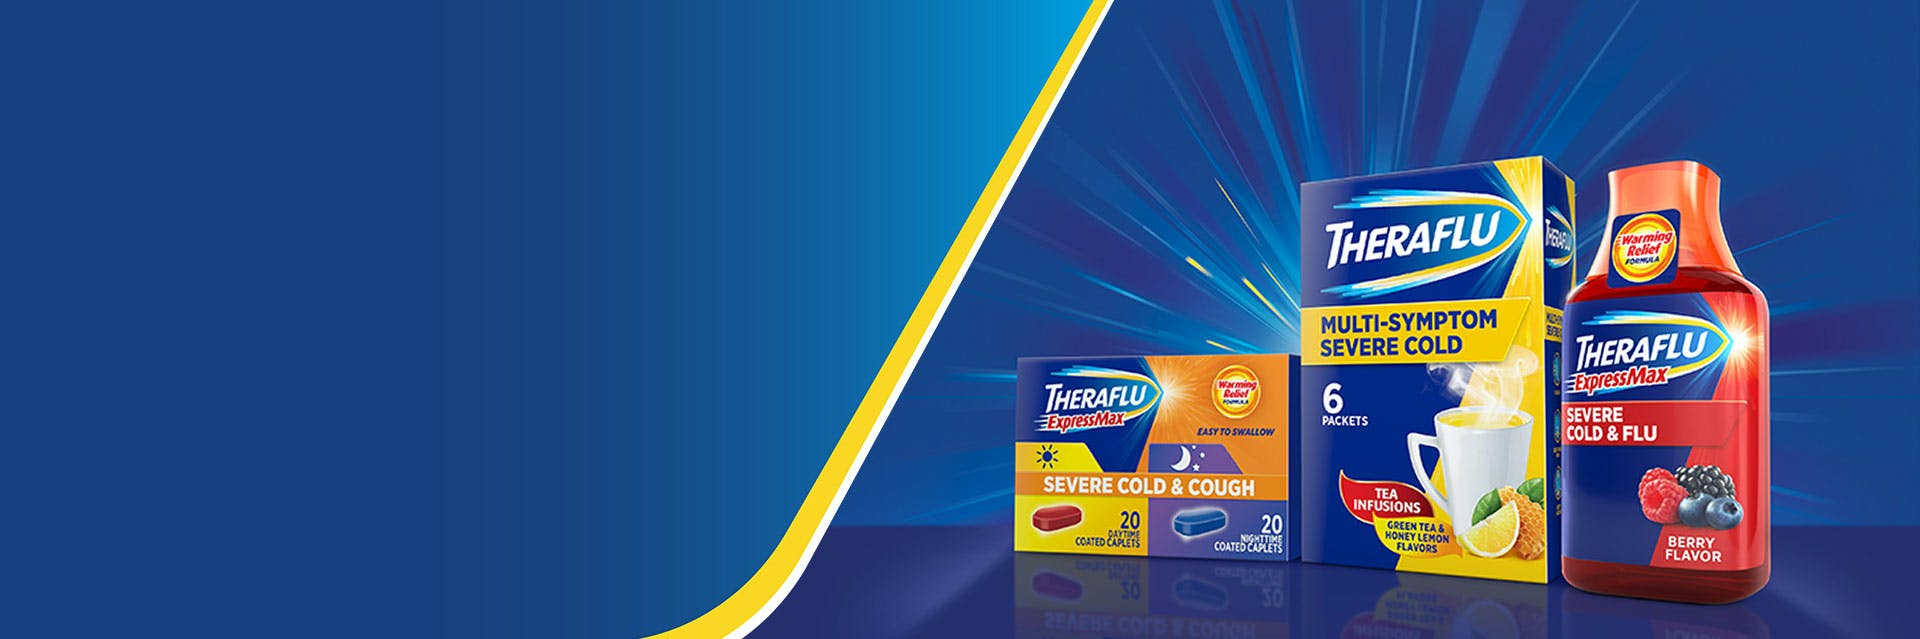 Theraflu products on a blue background